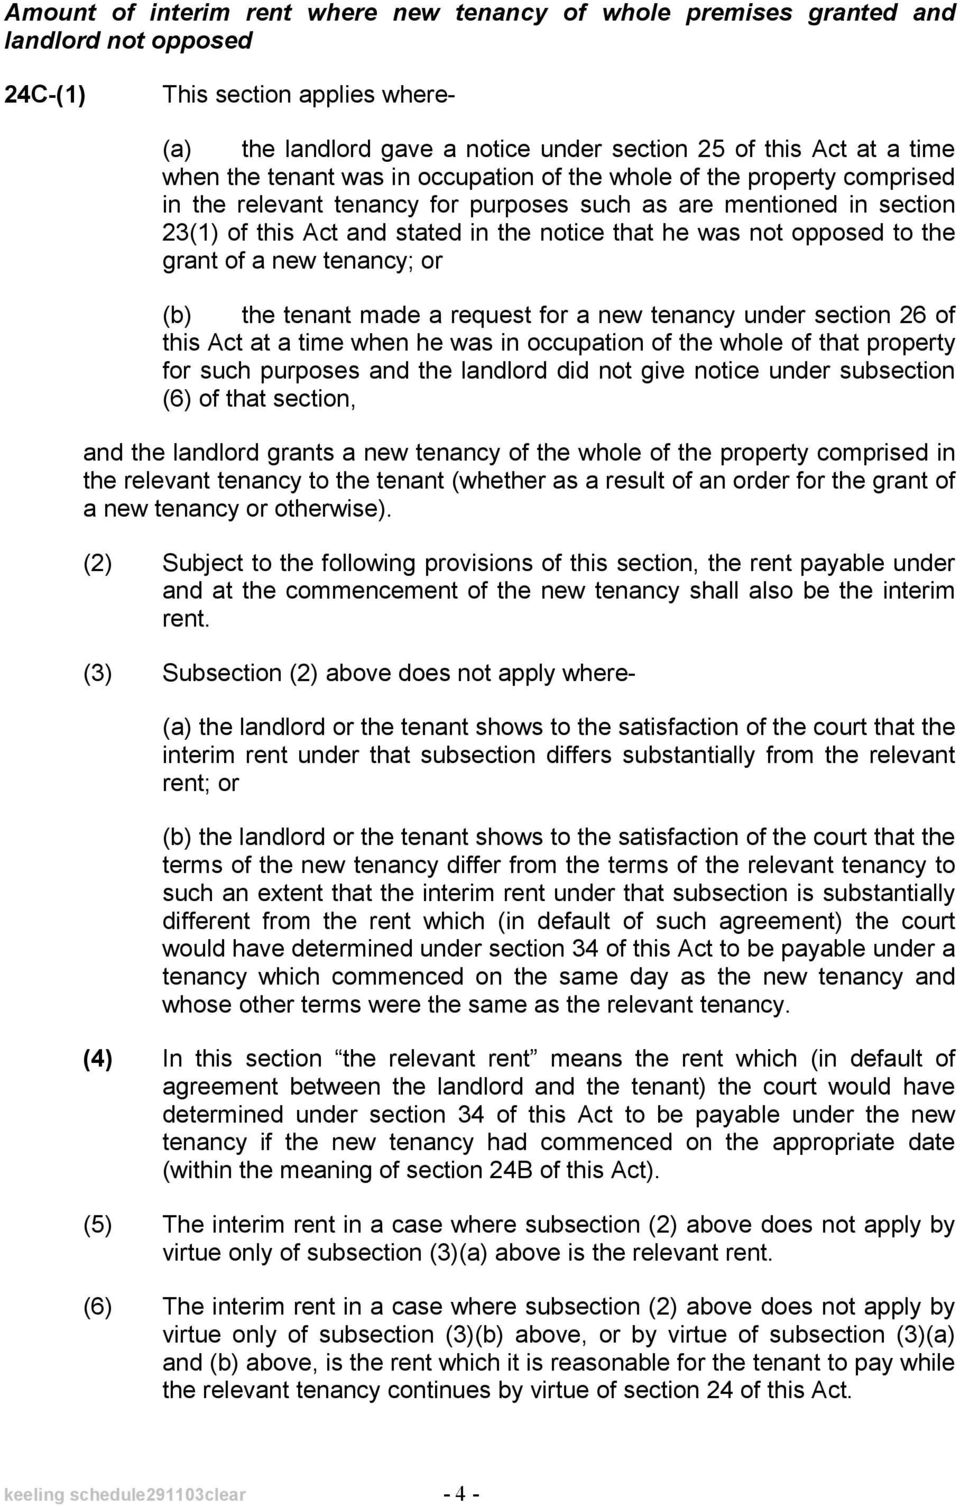 not opposed to the grant of a new tenancy; or (b) the tenant made a request for a new tenancy under section 26 of this Act at a time when he was in occupation of the whole of that property for such